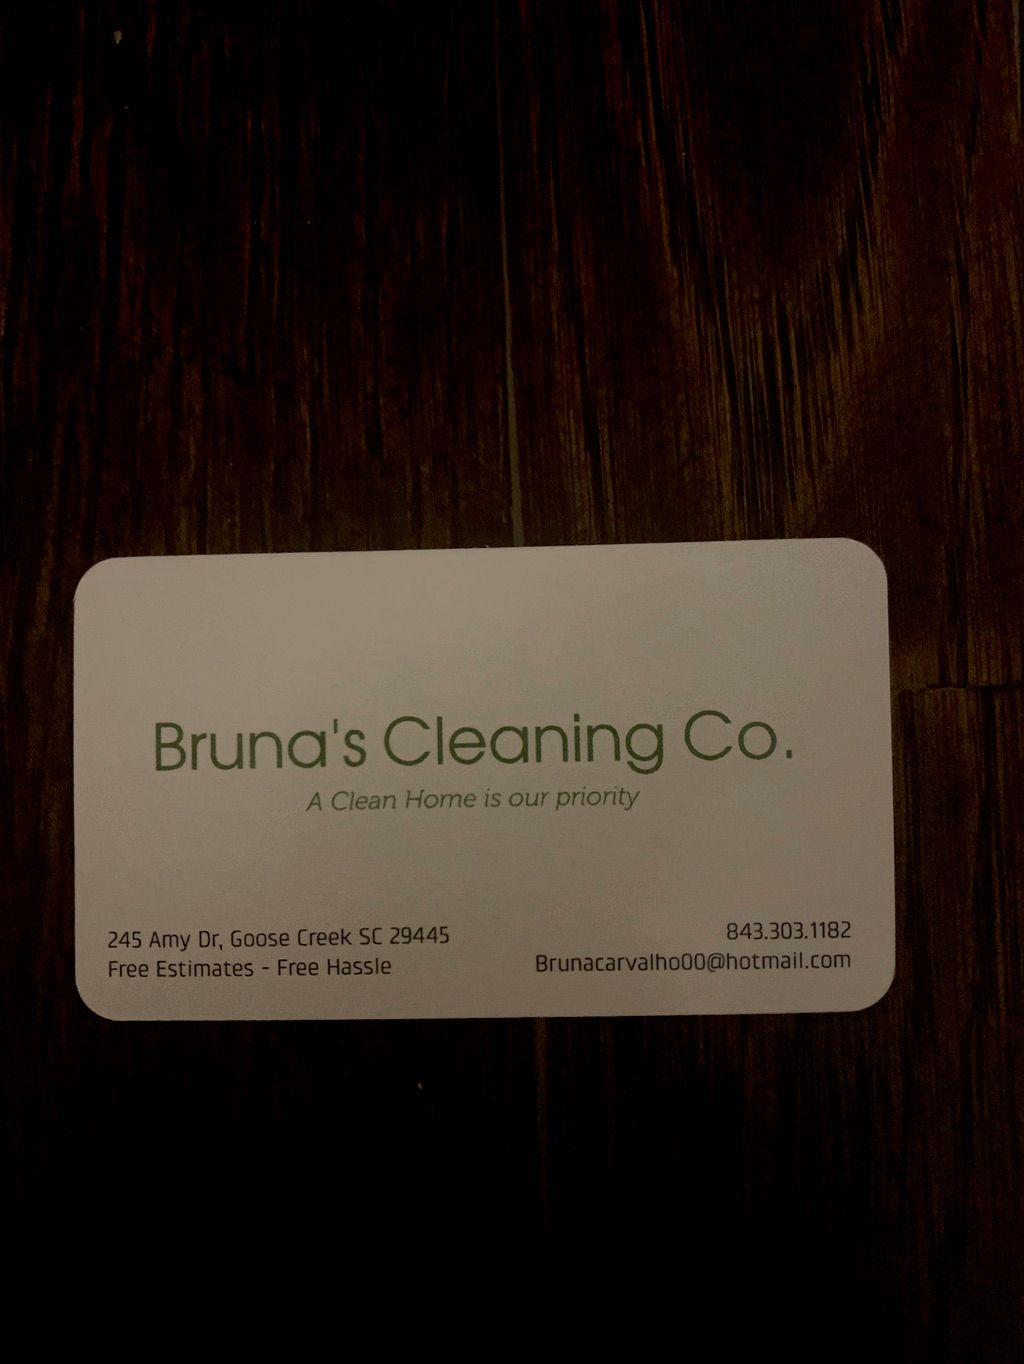 Bruna's Cleaning Co.